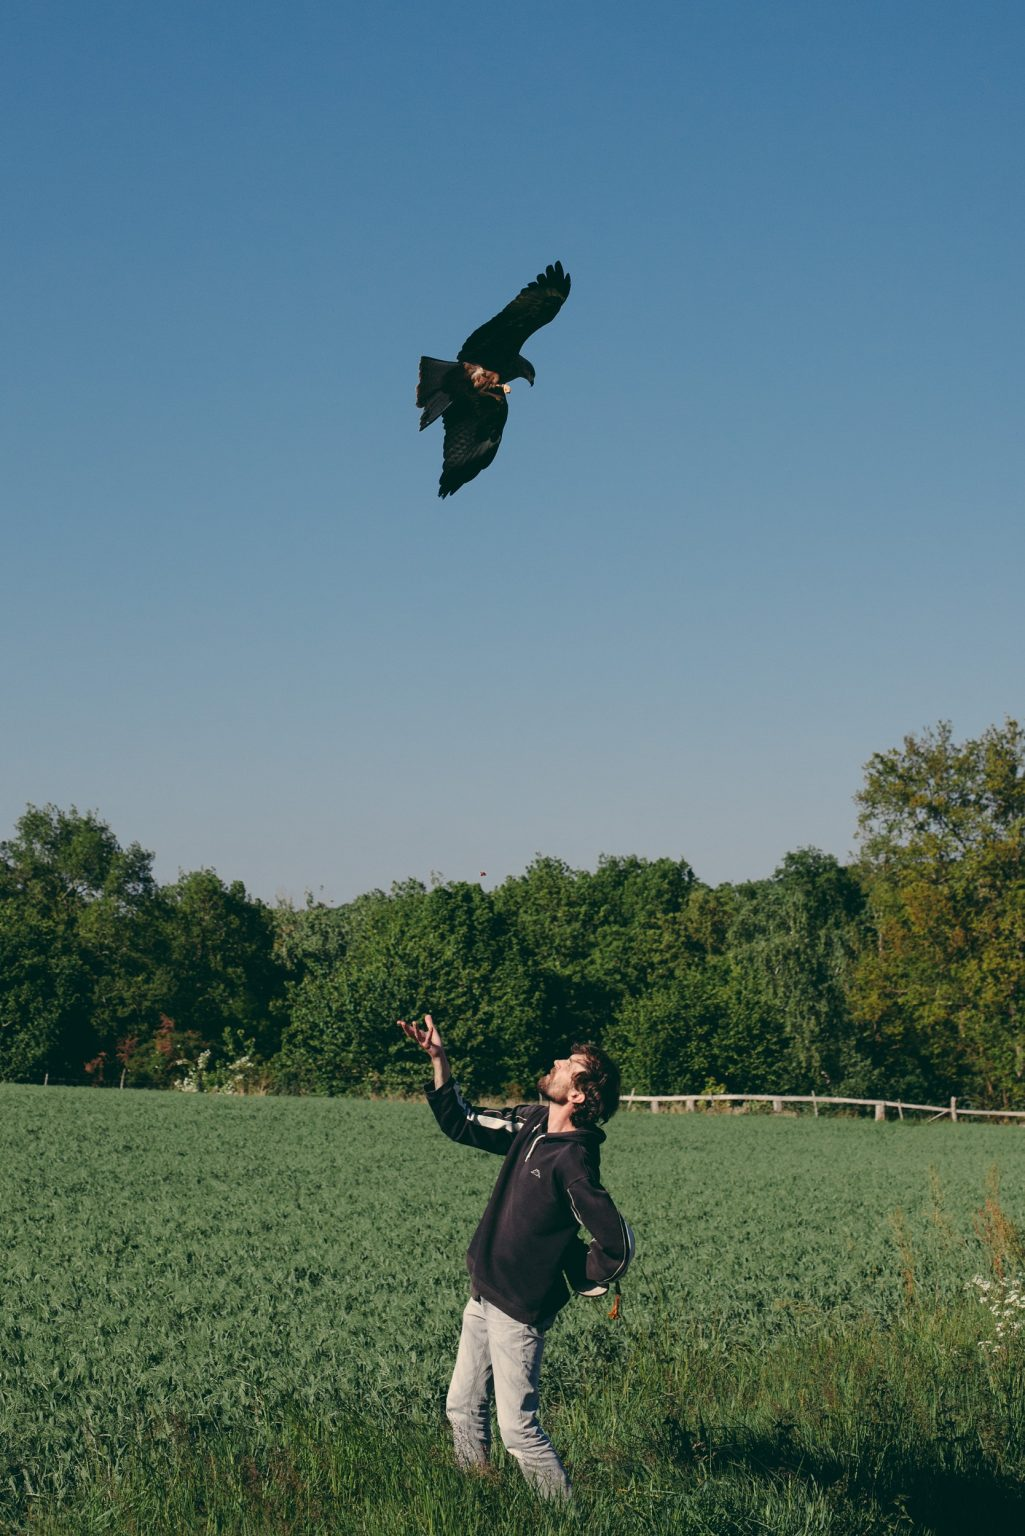 Bonneuil-Matours, France, May 2017 - La Maison Neuve. Tristan Plot plays with the black kite Elypse in flight. ><  Bonneuil-Matours, Francia, maggio 2017 -  La Maison Neuve. Tristan Plot gioca con il nibbio nero Elypse in volo.*** SPECIAL   FEE   APPLIES *** *** Local Caption *** 01489311